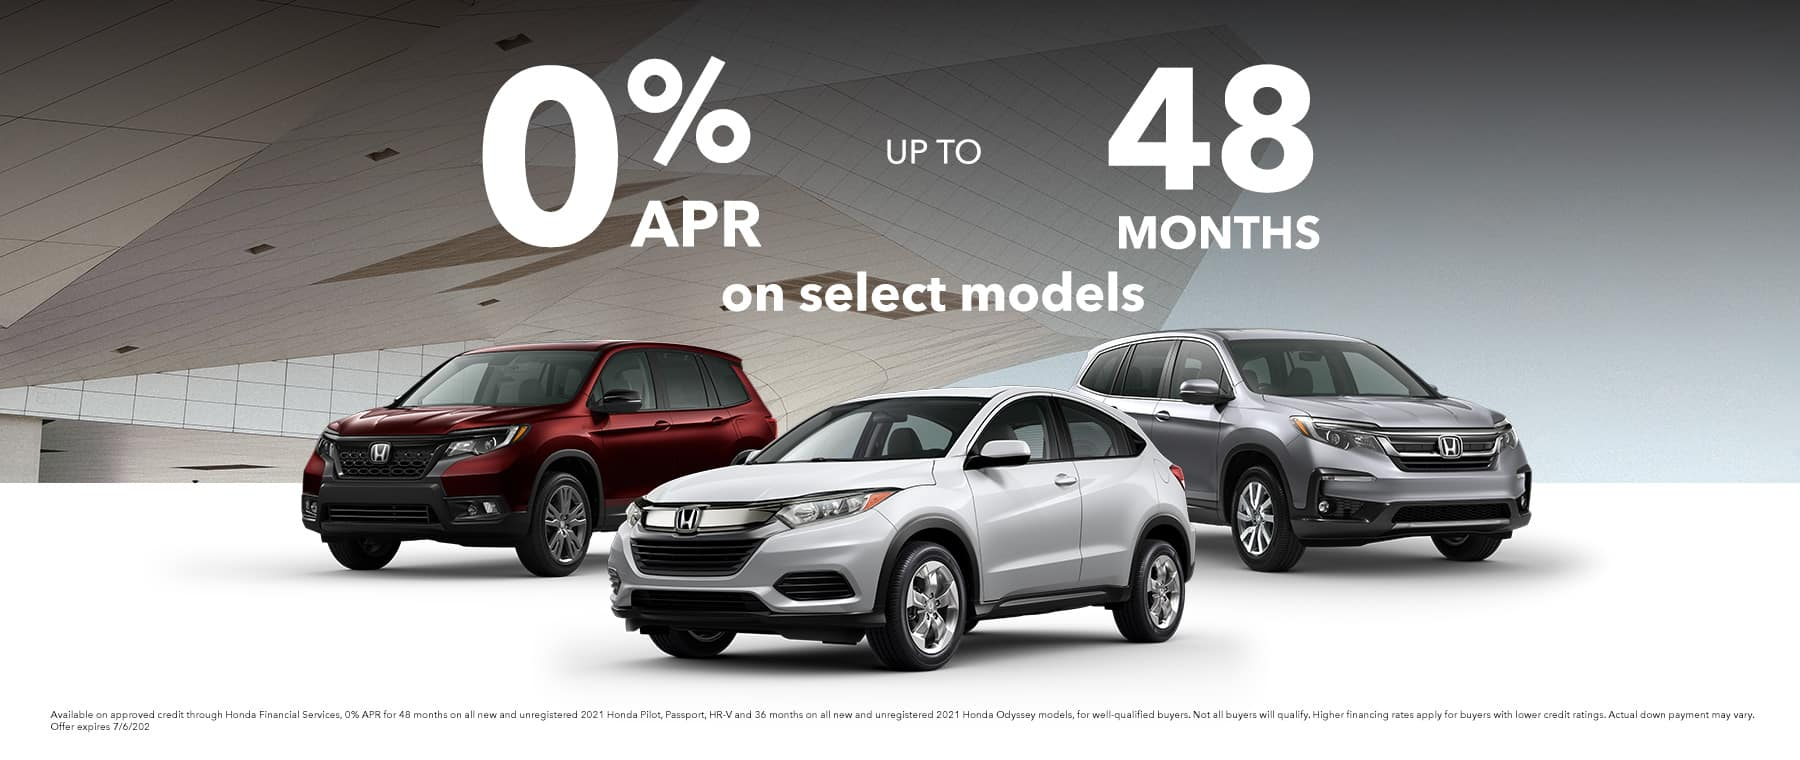 0% APR Financing up to 48 months on select models